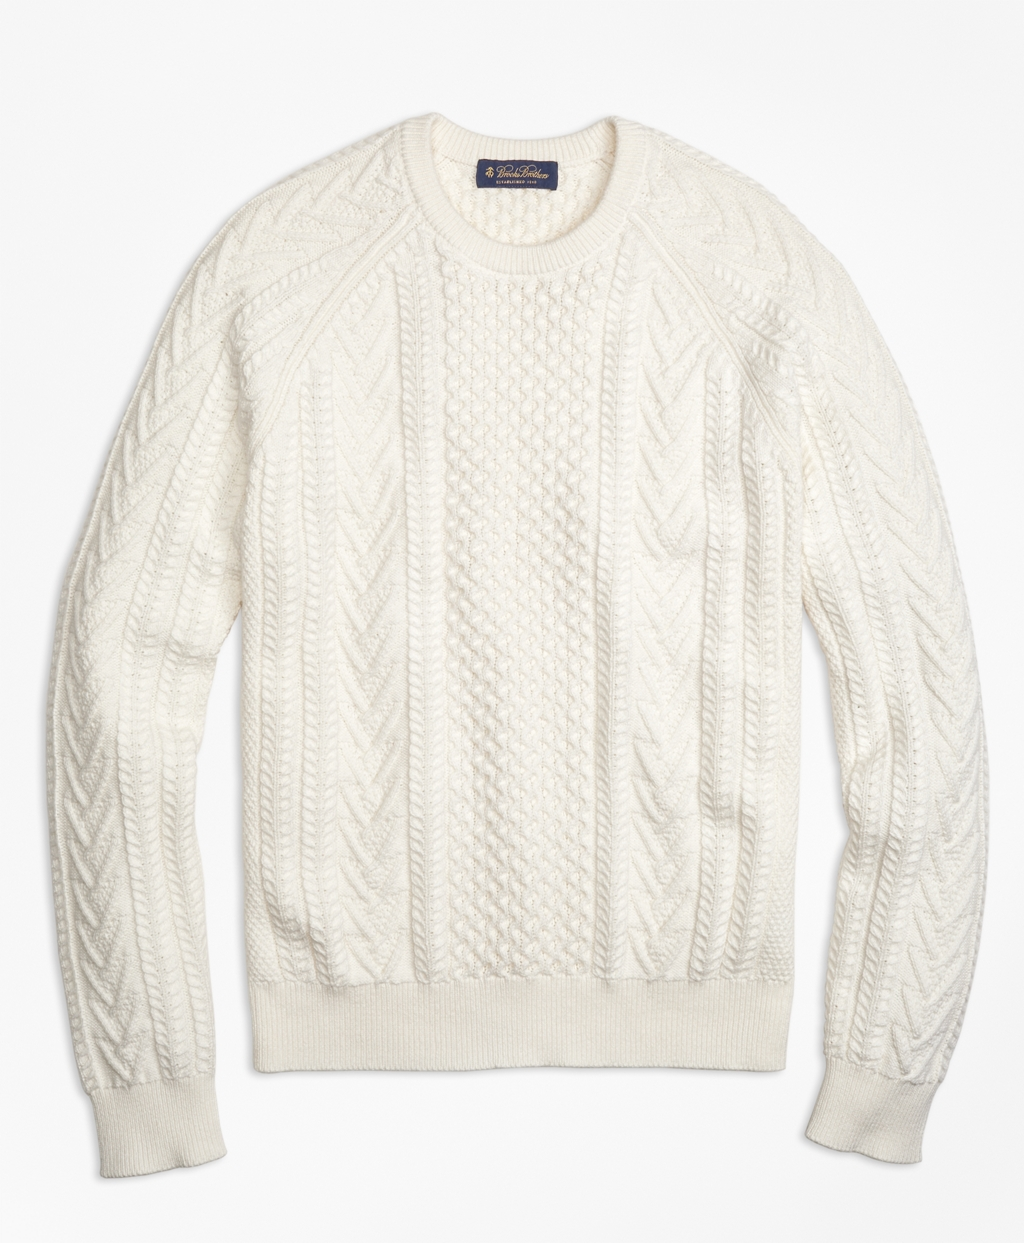 Cotton Fisherman Crewneck Sweater - Brooks Brothers